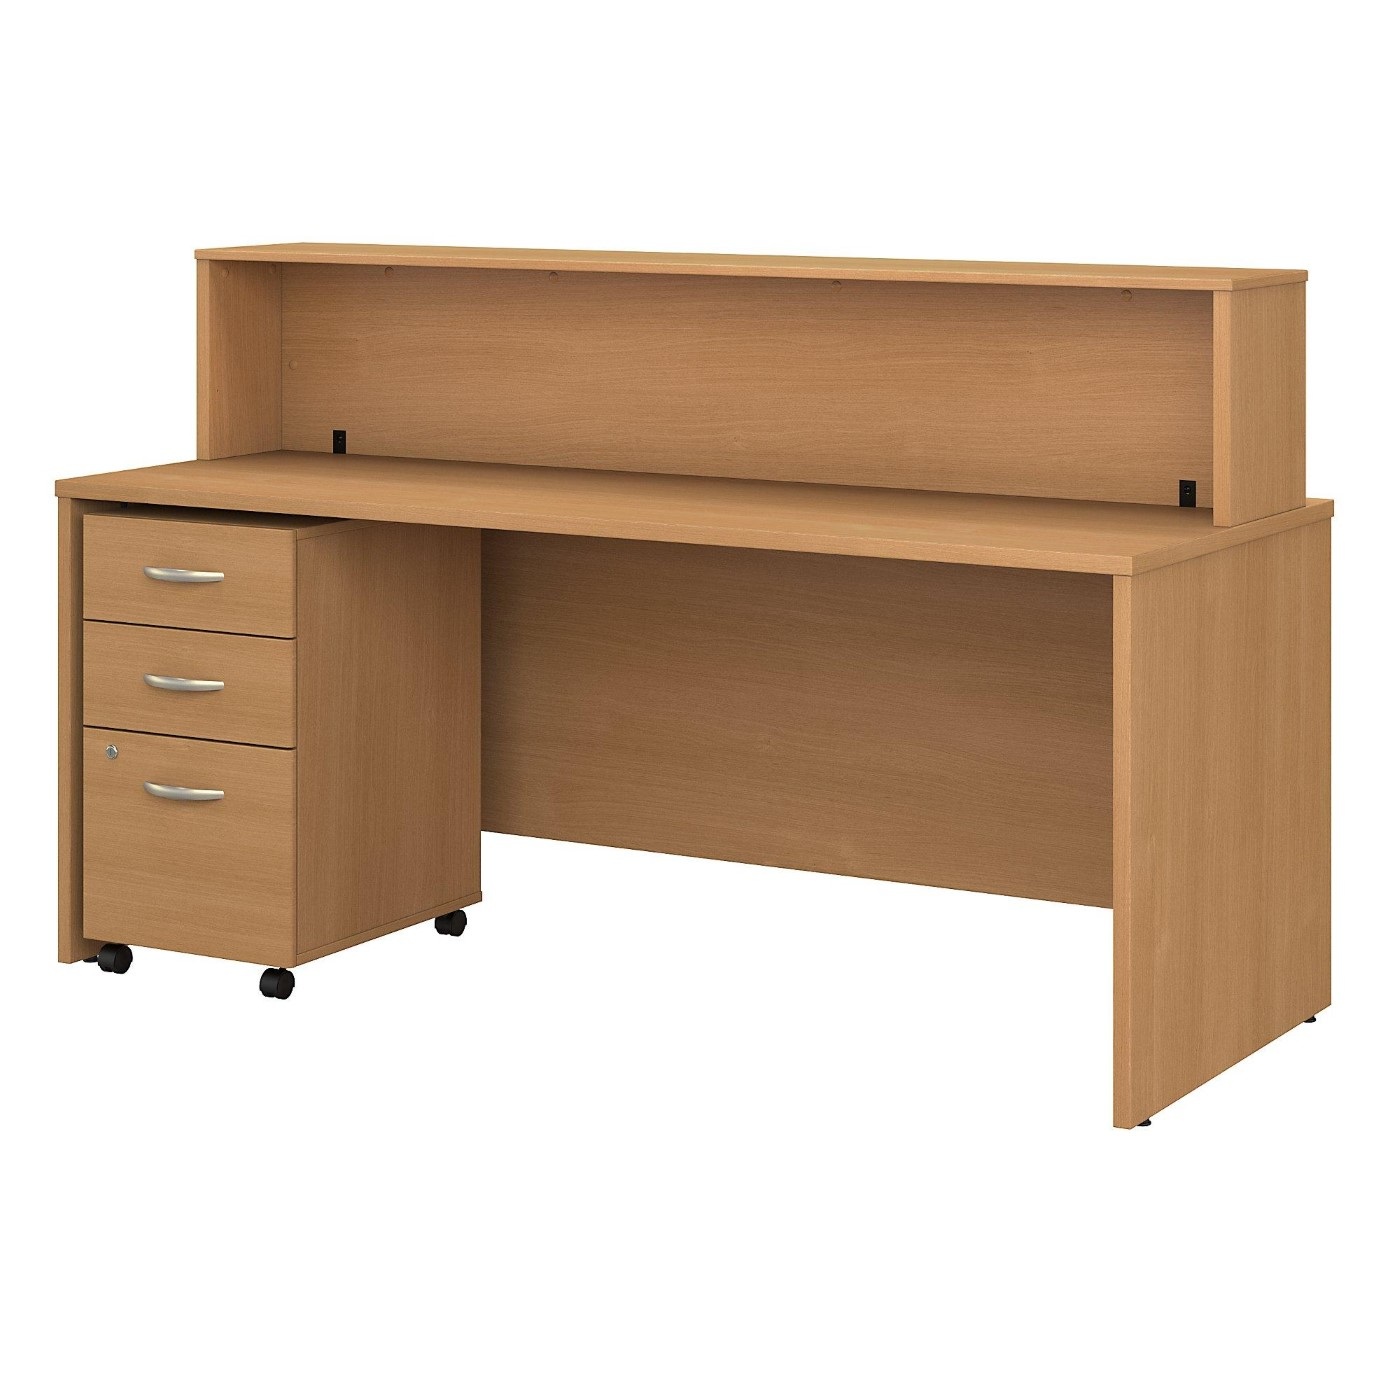 BUSH BUSINESS FURNITURE SERIES C 72W X 30D RECEPTION DESK WITH MOBILE FILE CABINET. FREE SHIPPING  VIDEO BELOW.